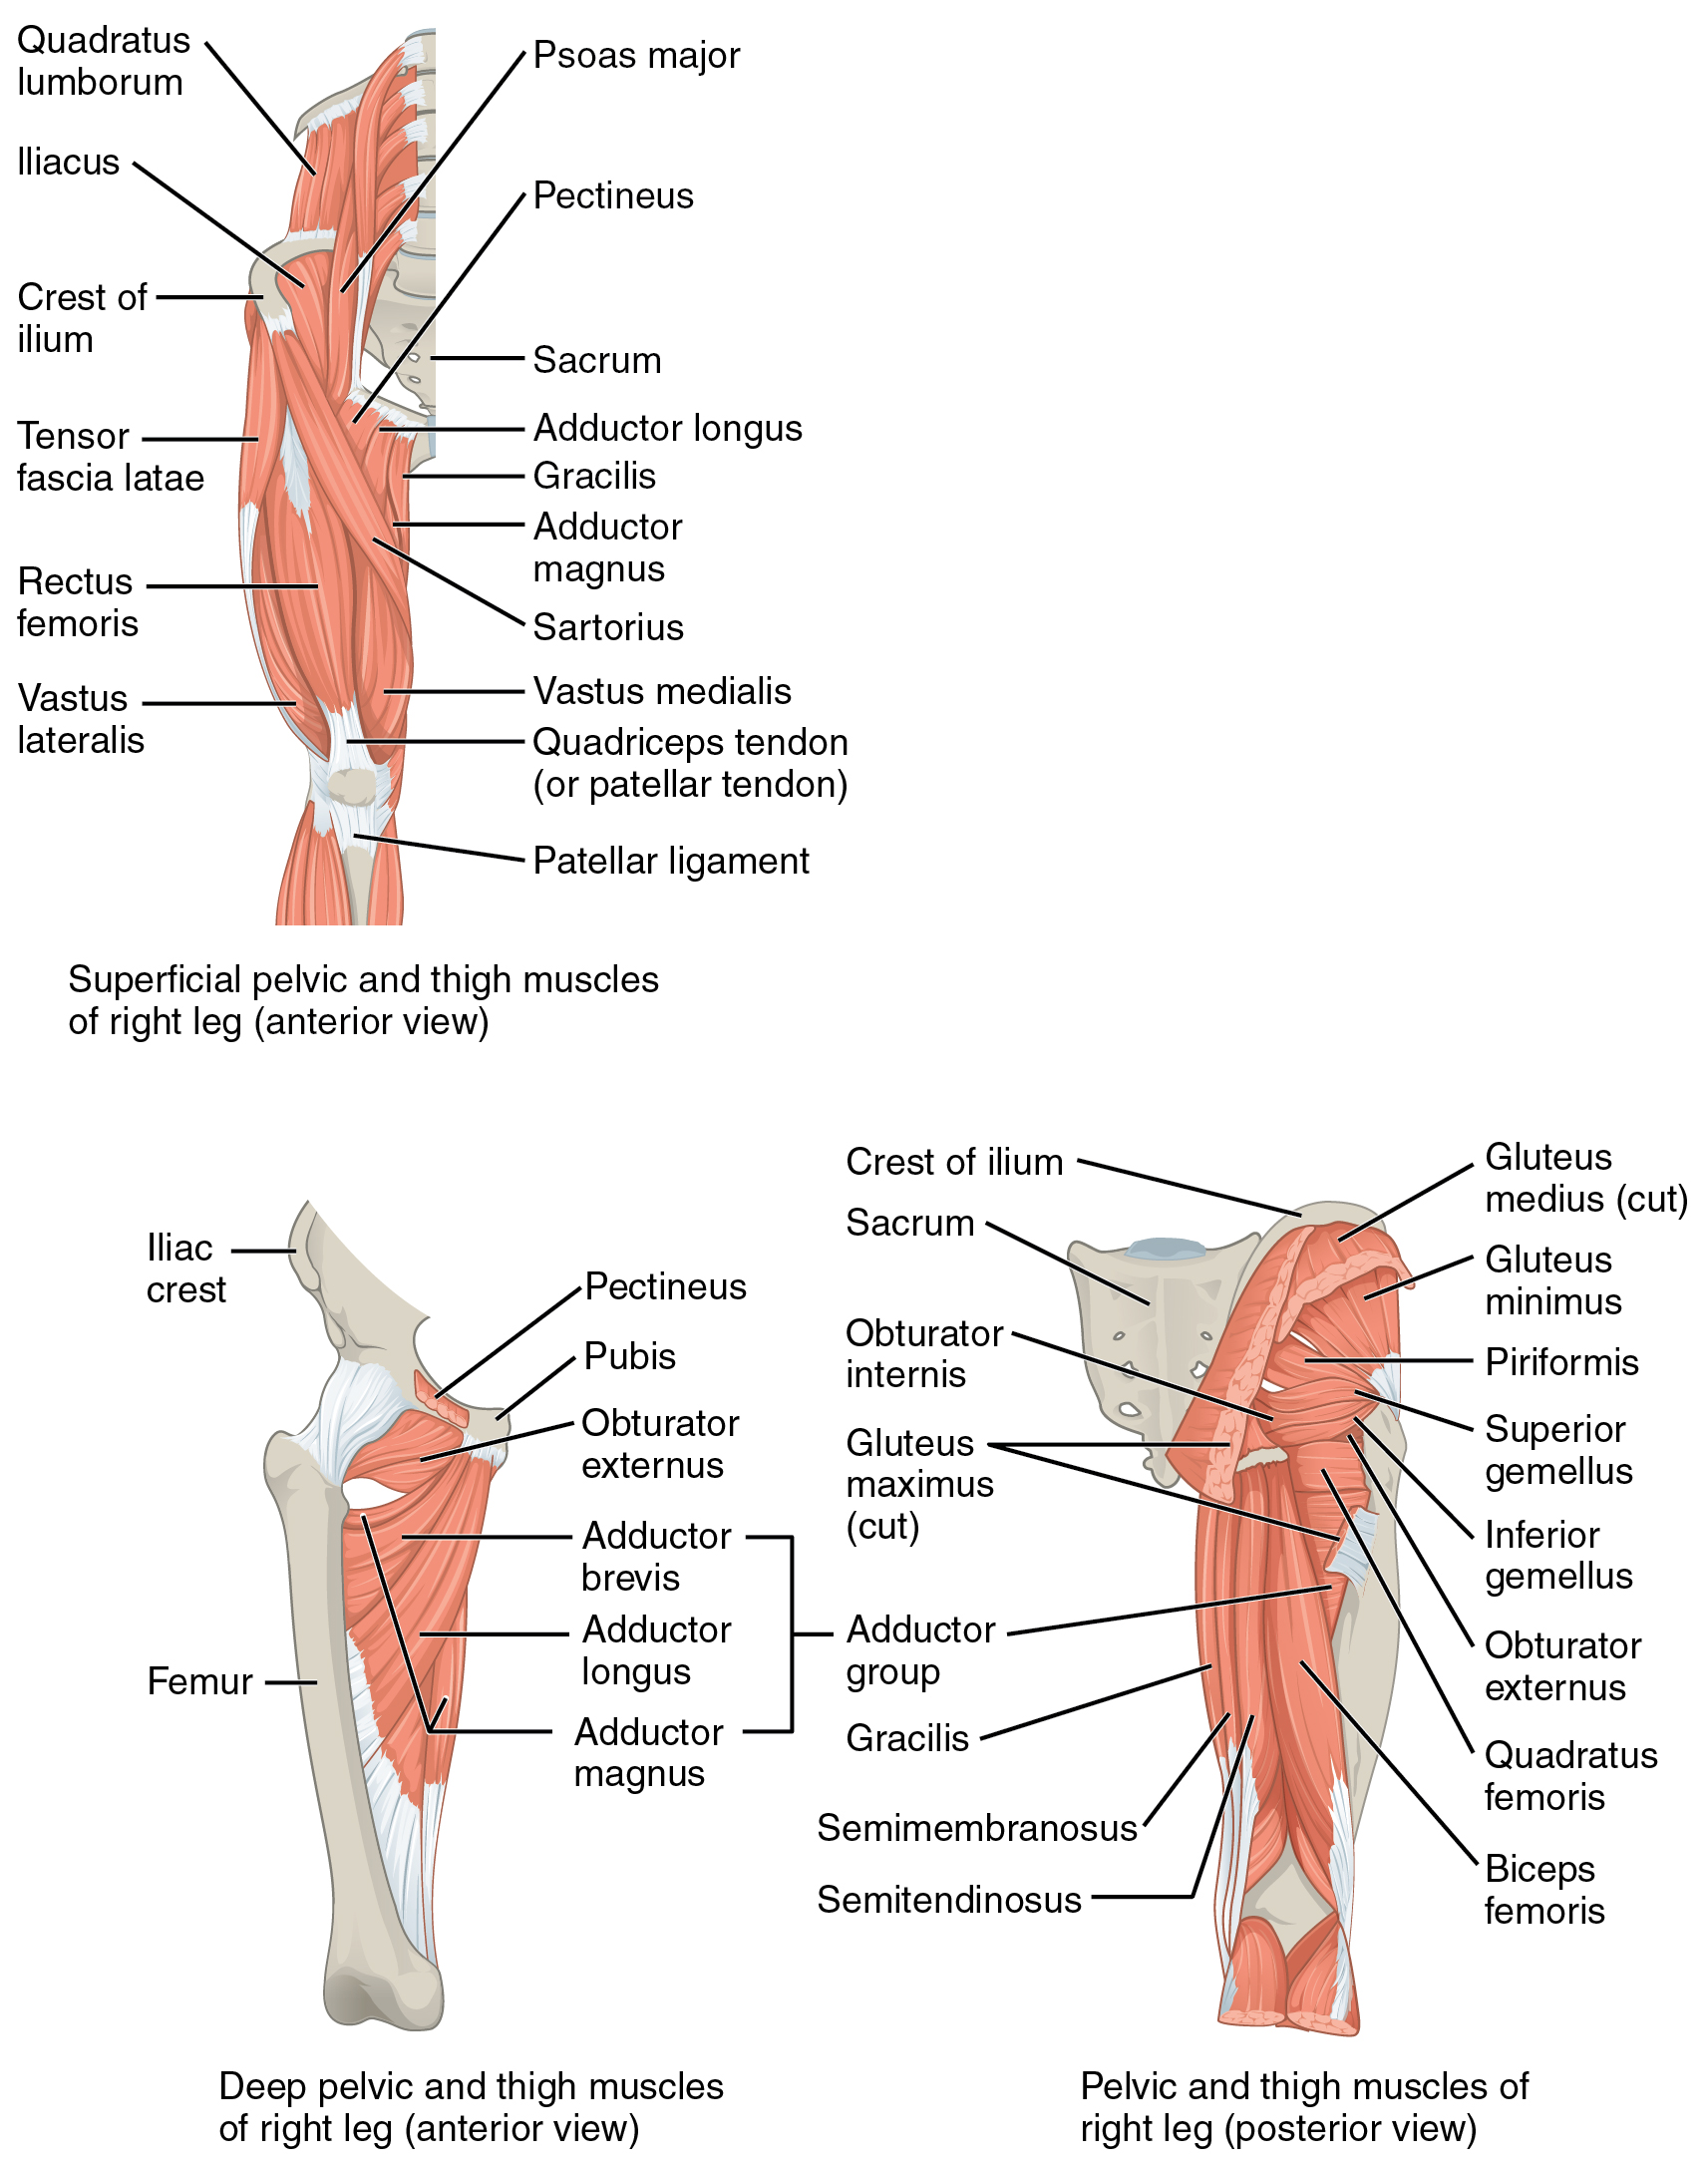 Appendicular Muscles Of The Pelvic Girdle And Lower Limbs